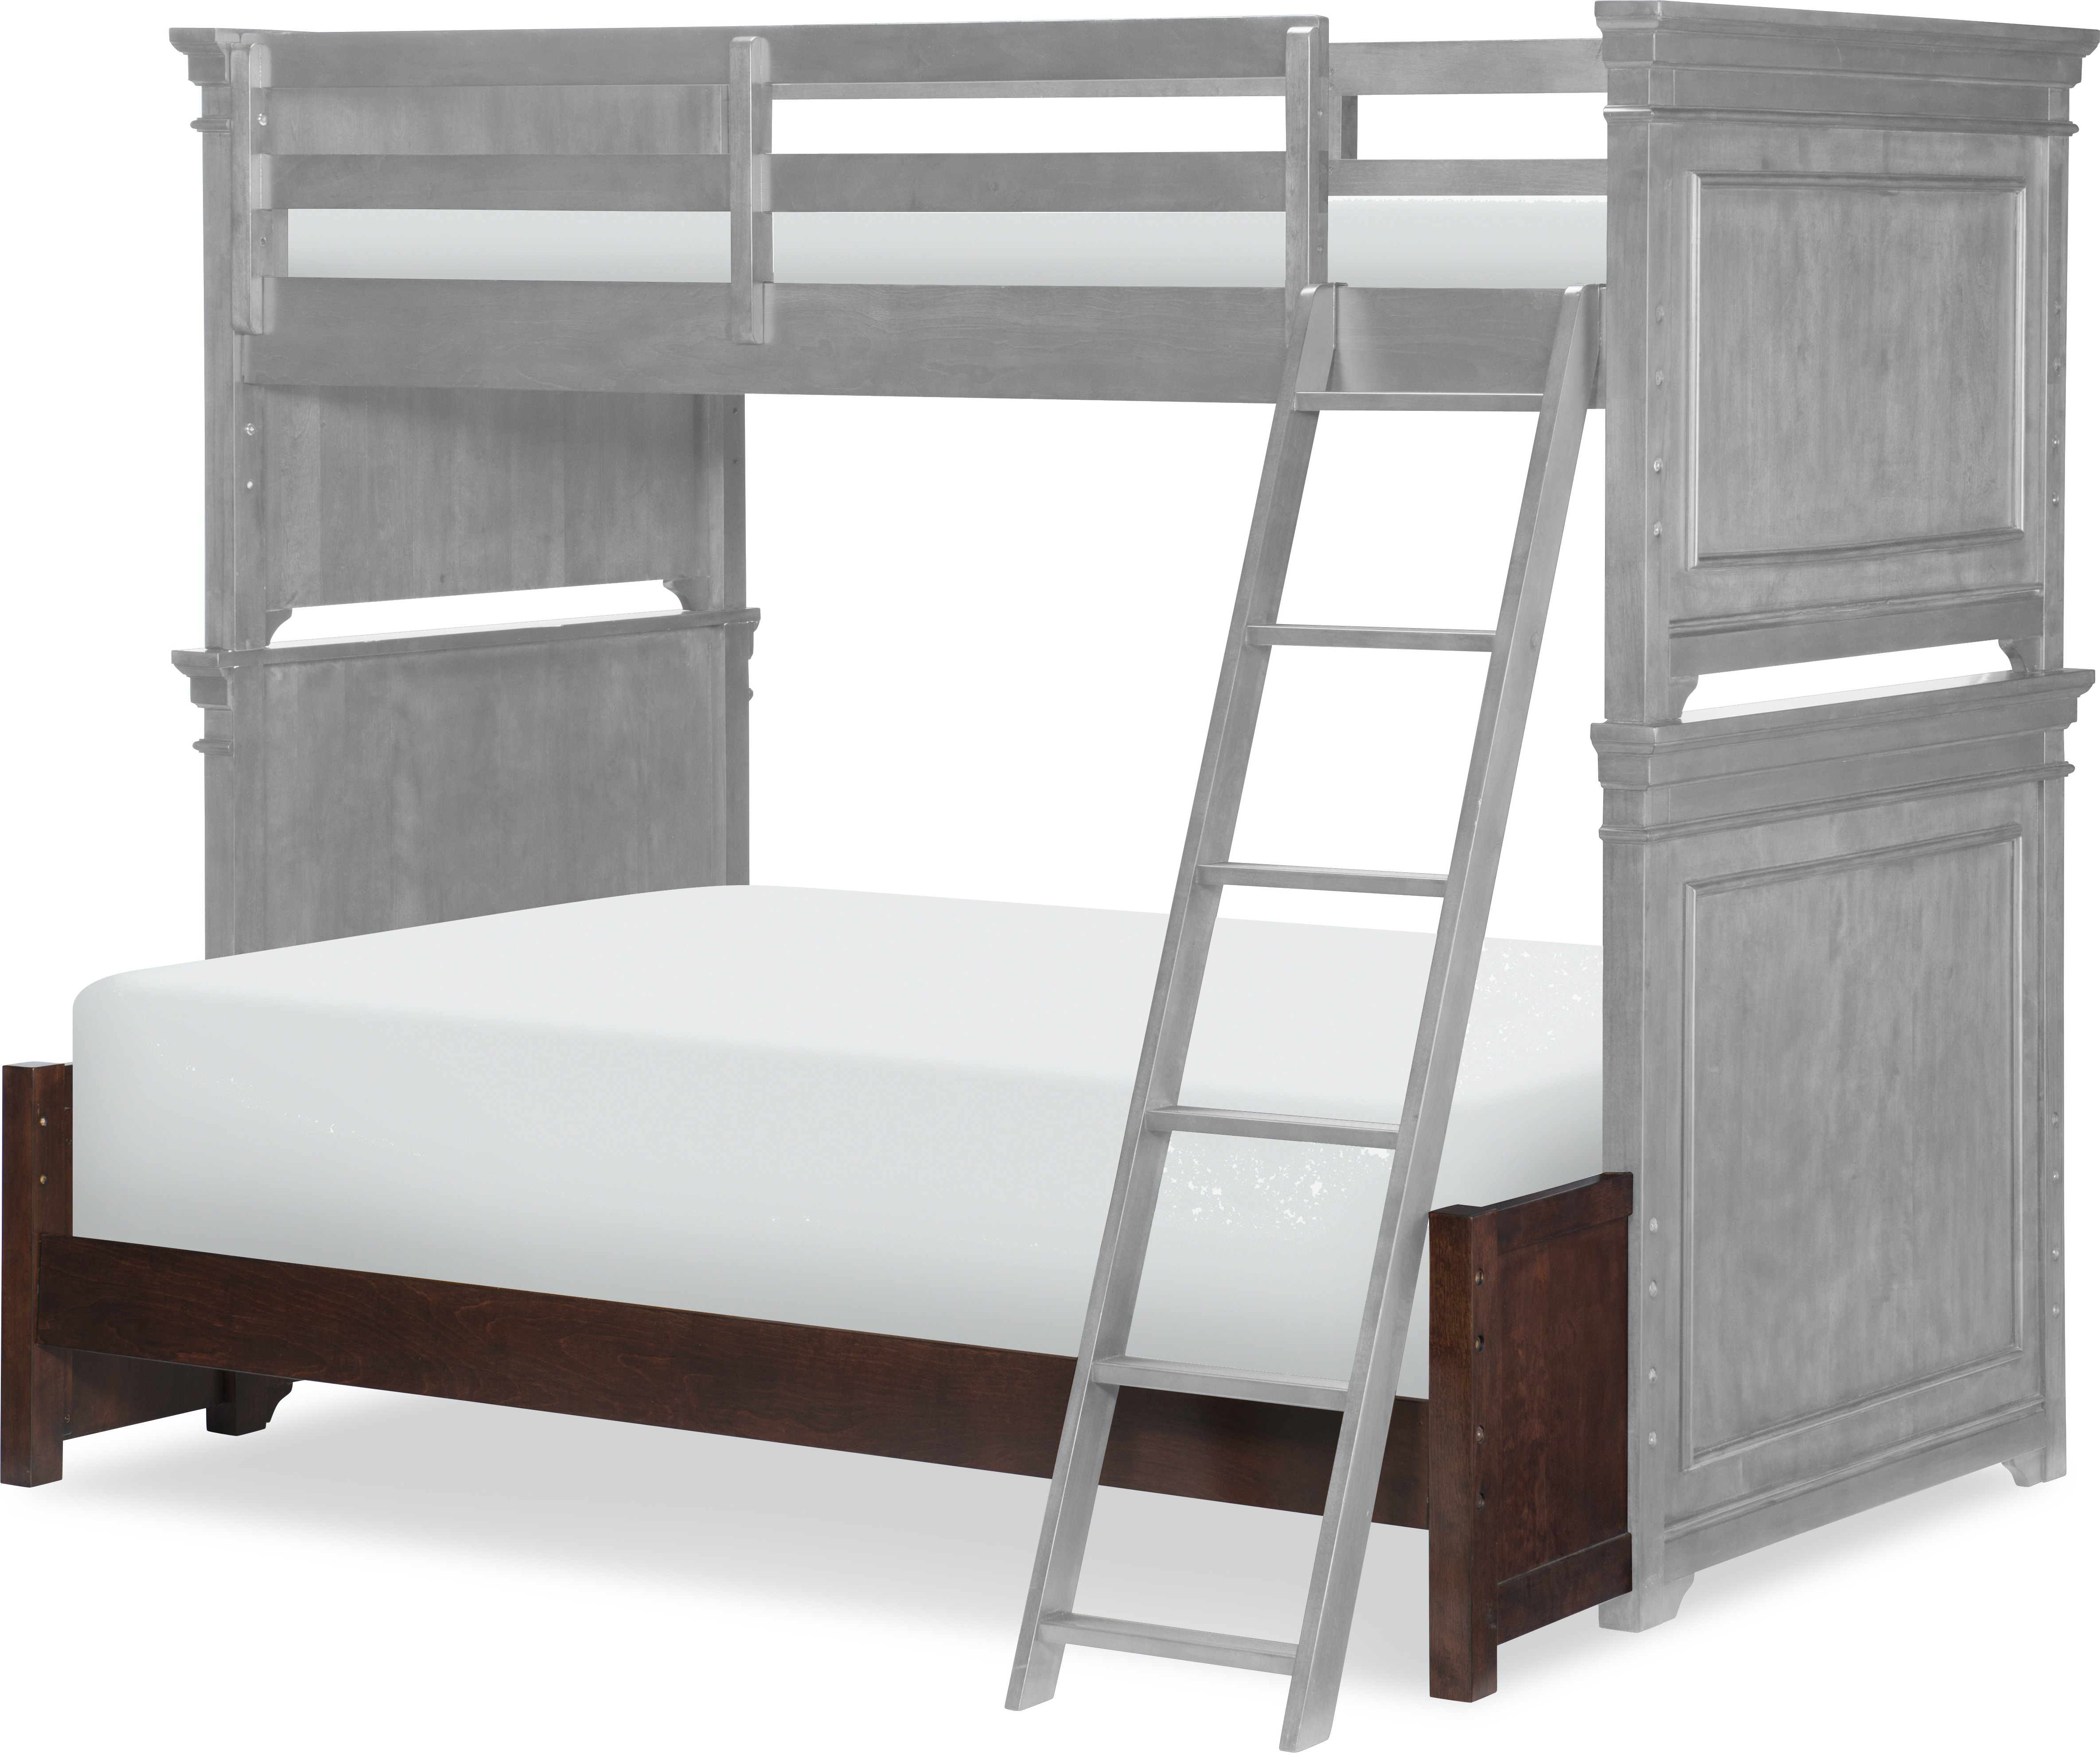 Legacy Classic Kids Youth Canterbury Full Size Bottom Bunk Extension 9814 8140 Lotts Furniture